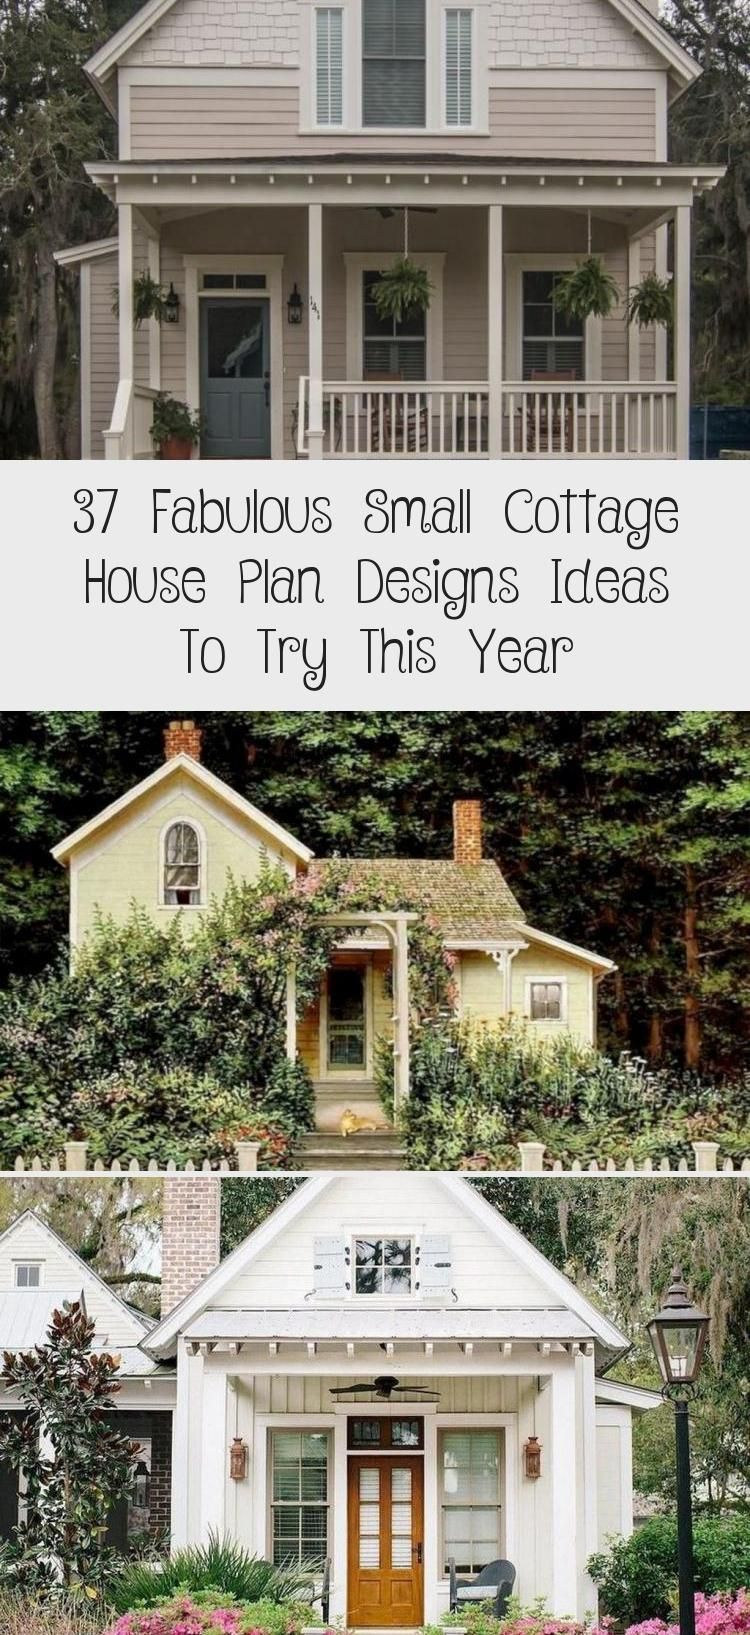 37 Fabulous Small Cottage House Plan Designs Ideas To Try This Year Smallhouseplanslshape S Small Cottage House Plans Cottage House Plans Small Cottage Homes